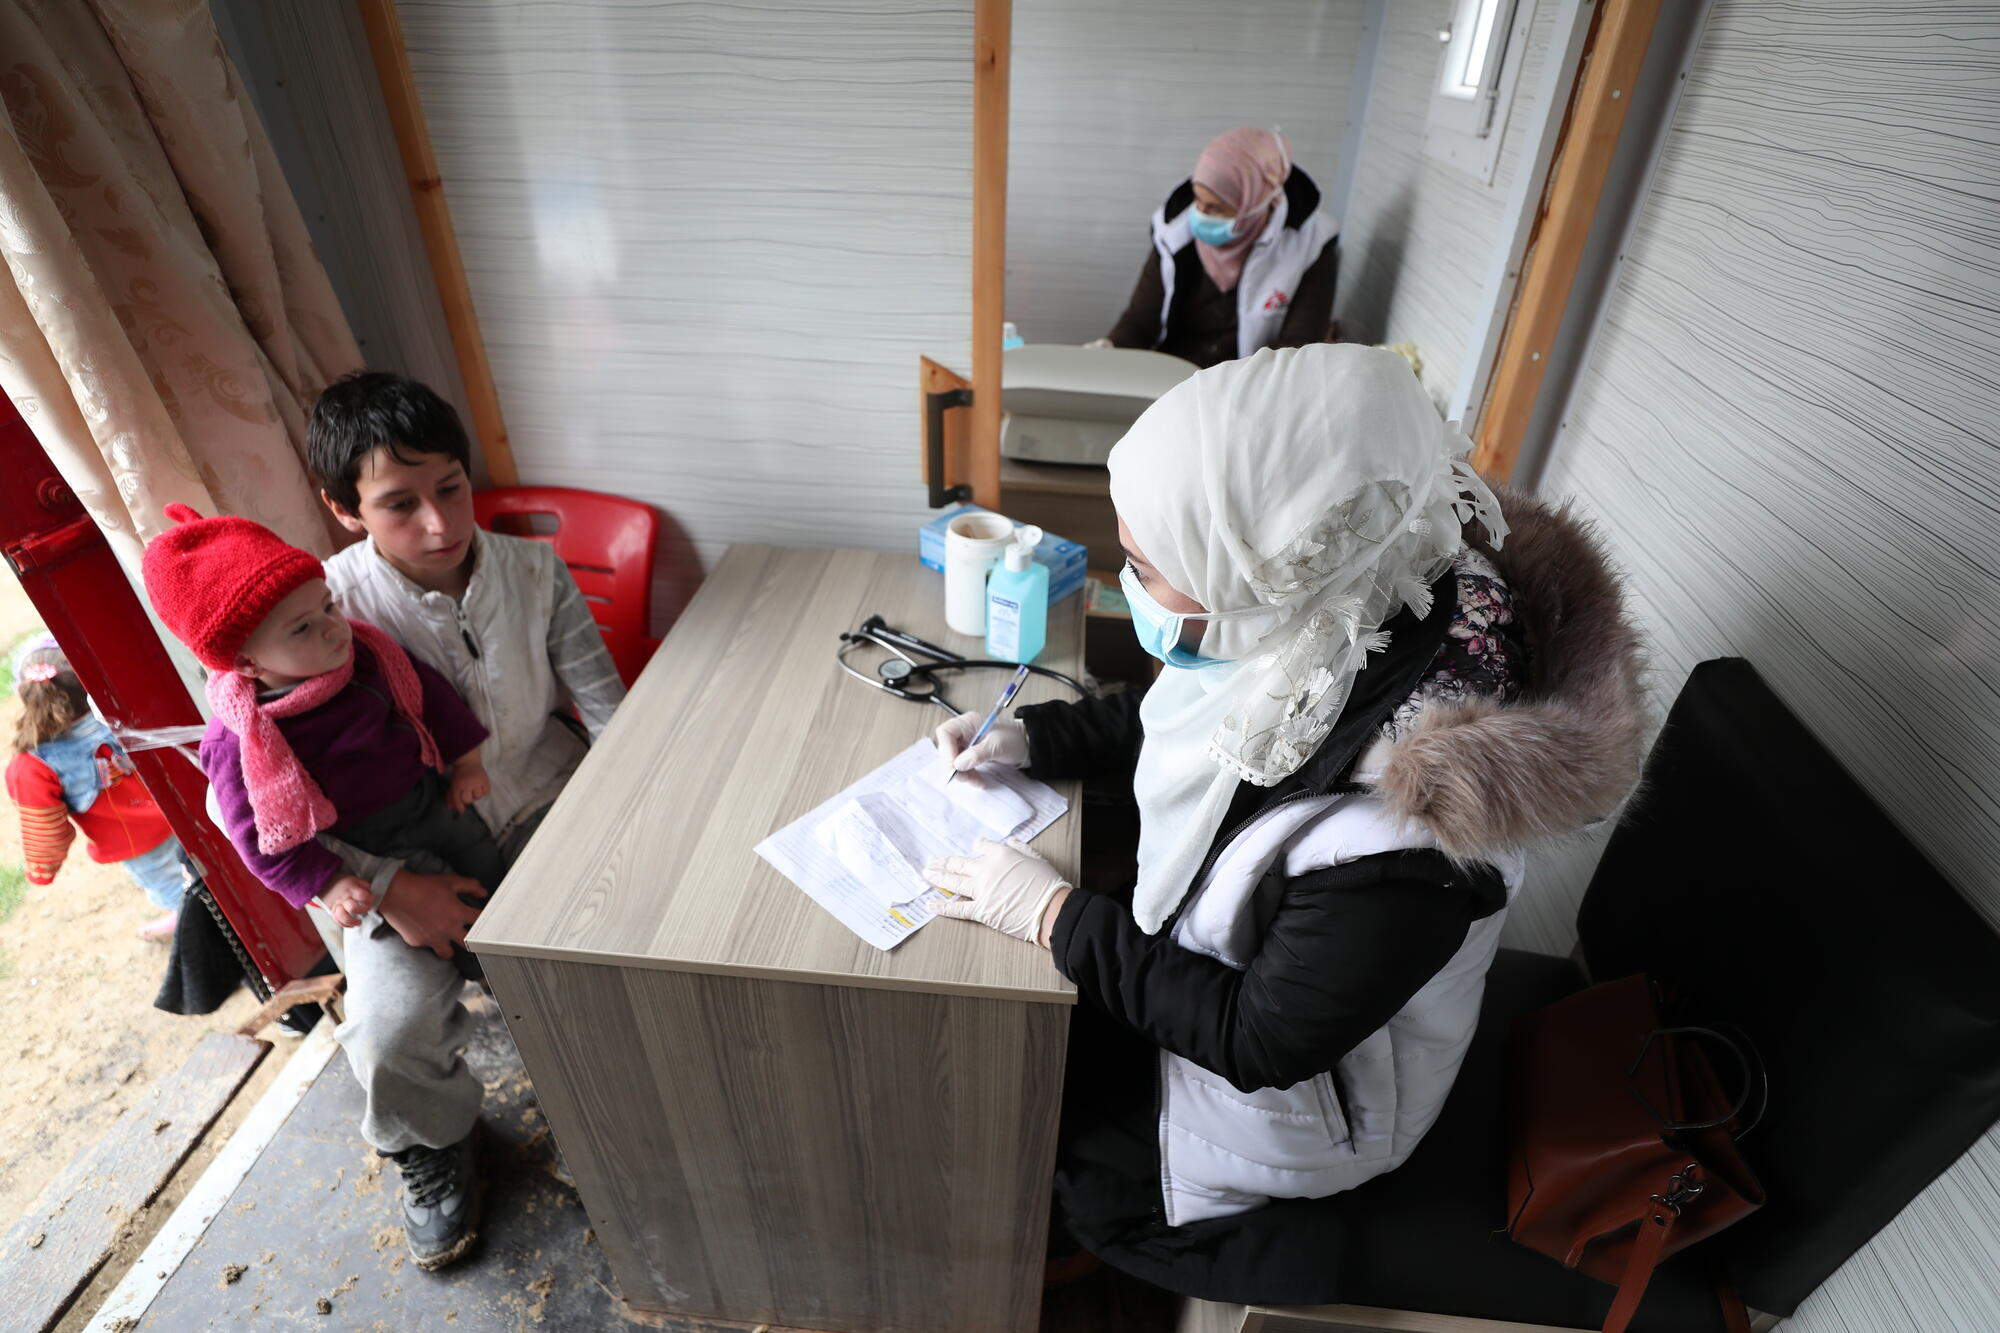 An MSF nurse talks with a young patient at MSF's mobile clinic in northwest Syria